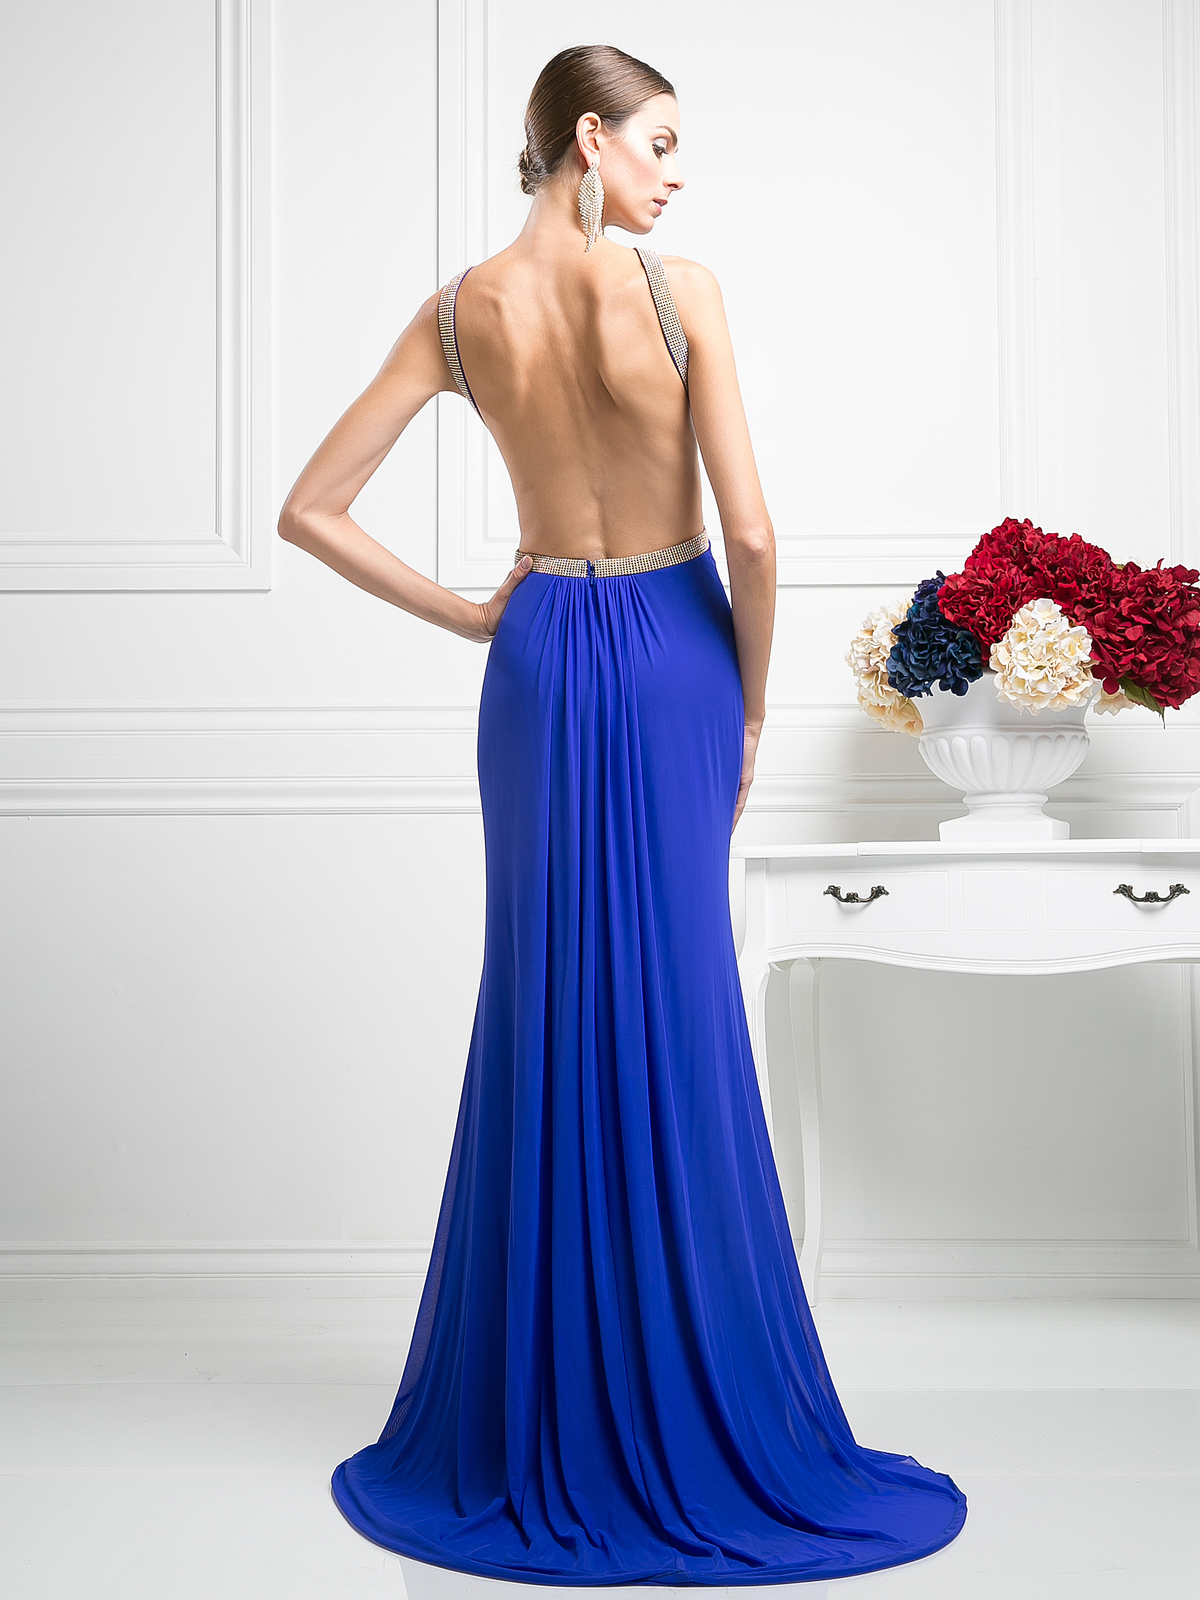 Halter Top Evening Dress with Side Cutouts | Sung Boutique L.A.